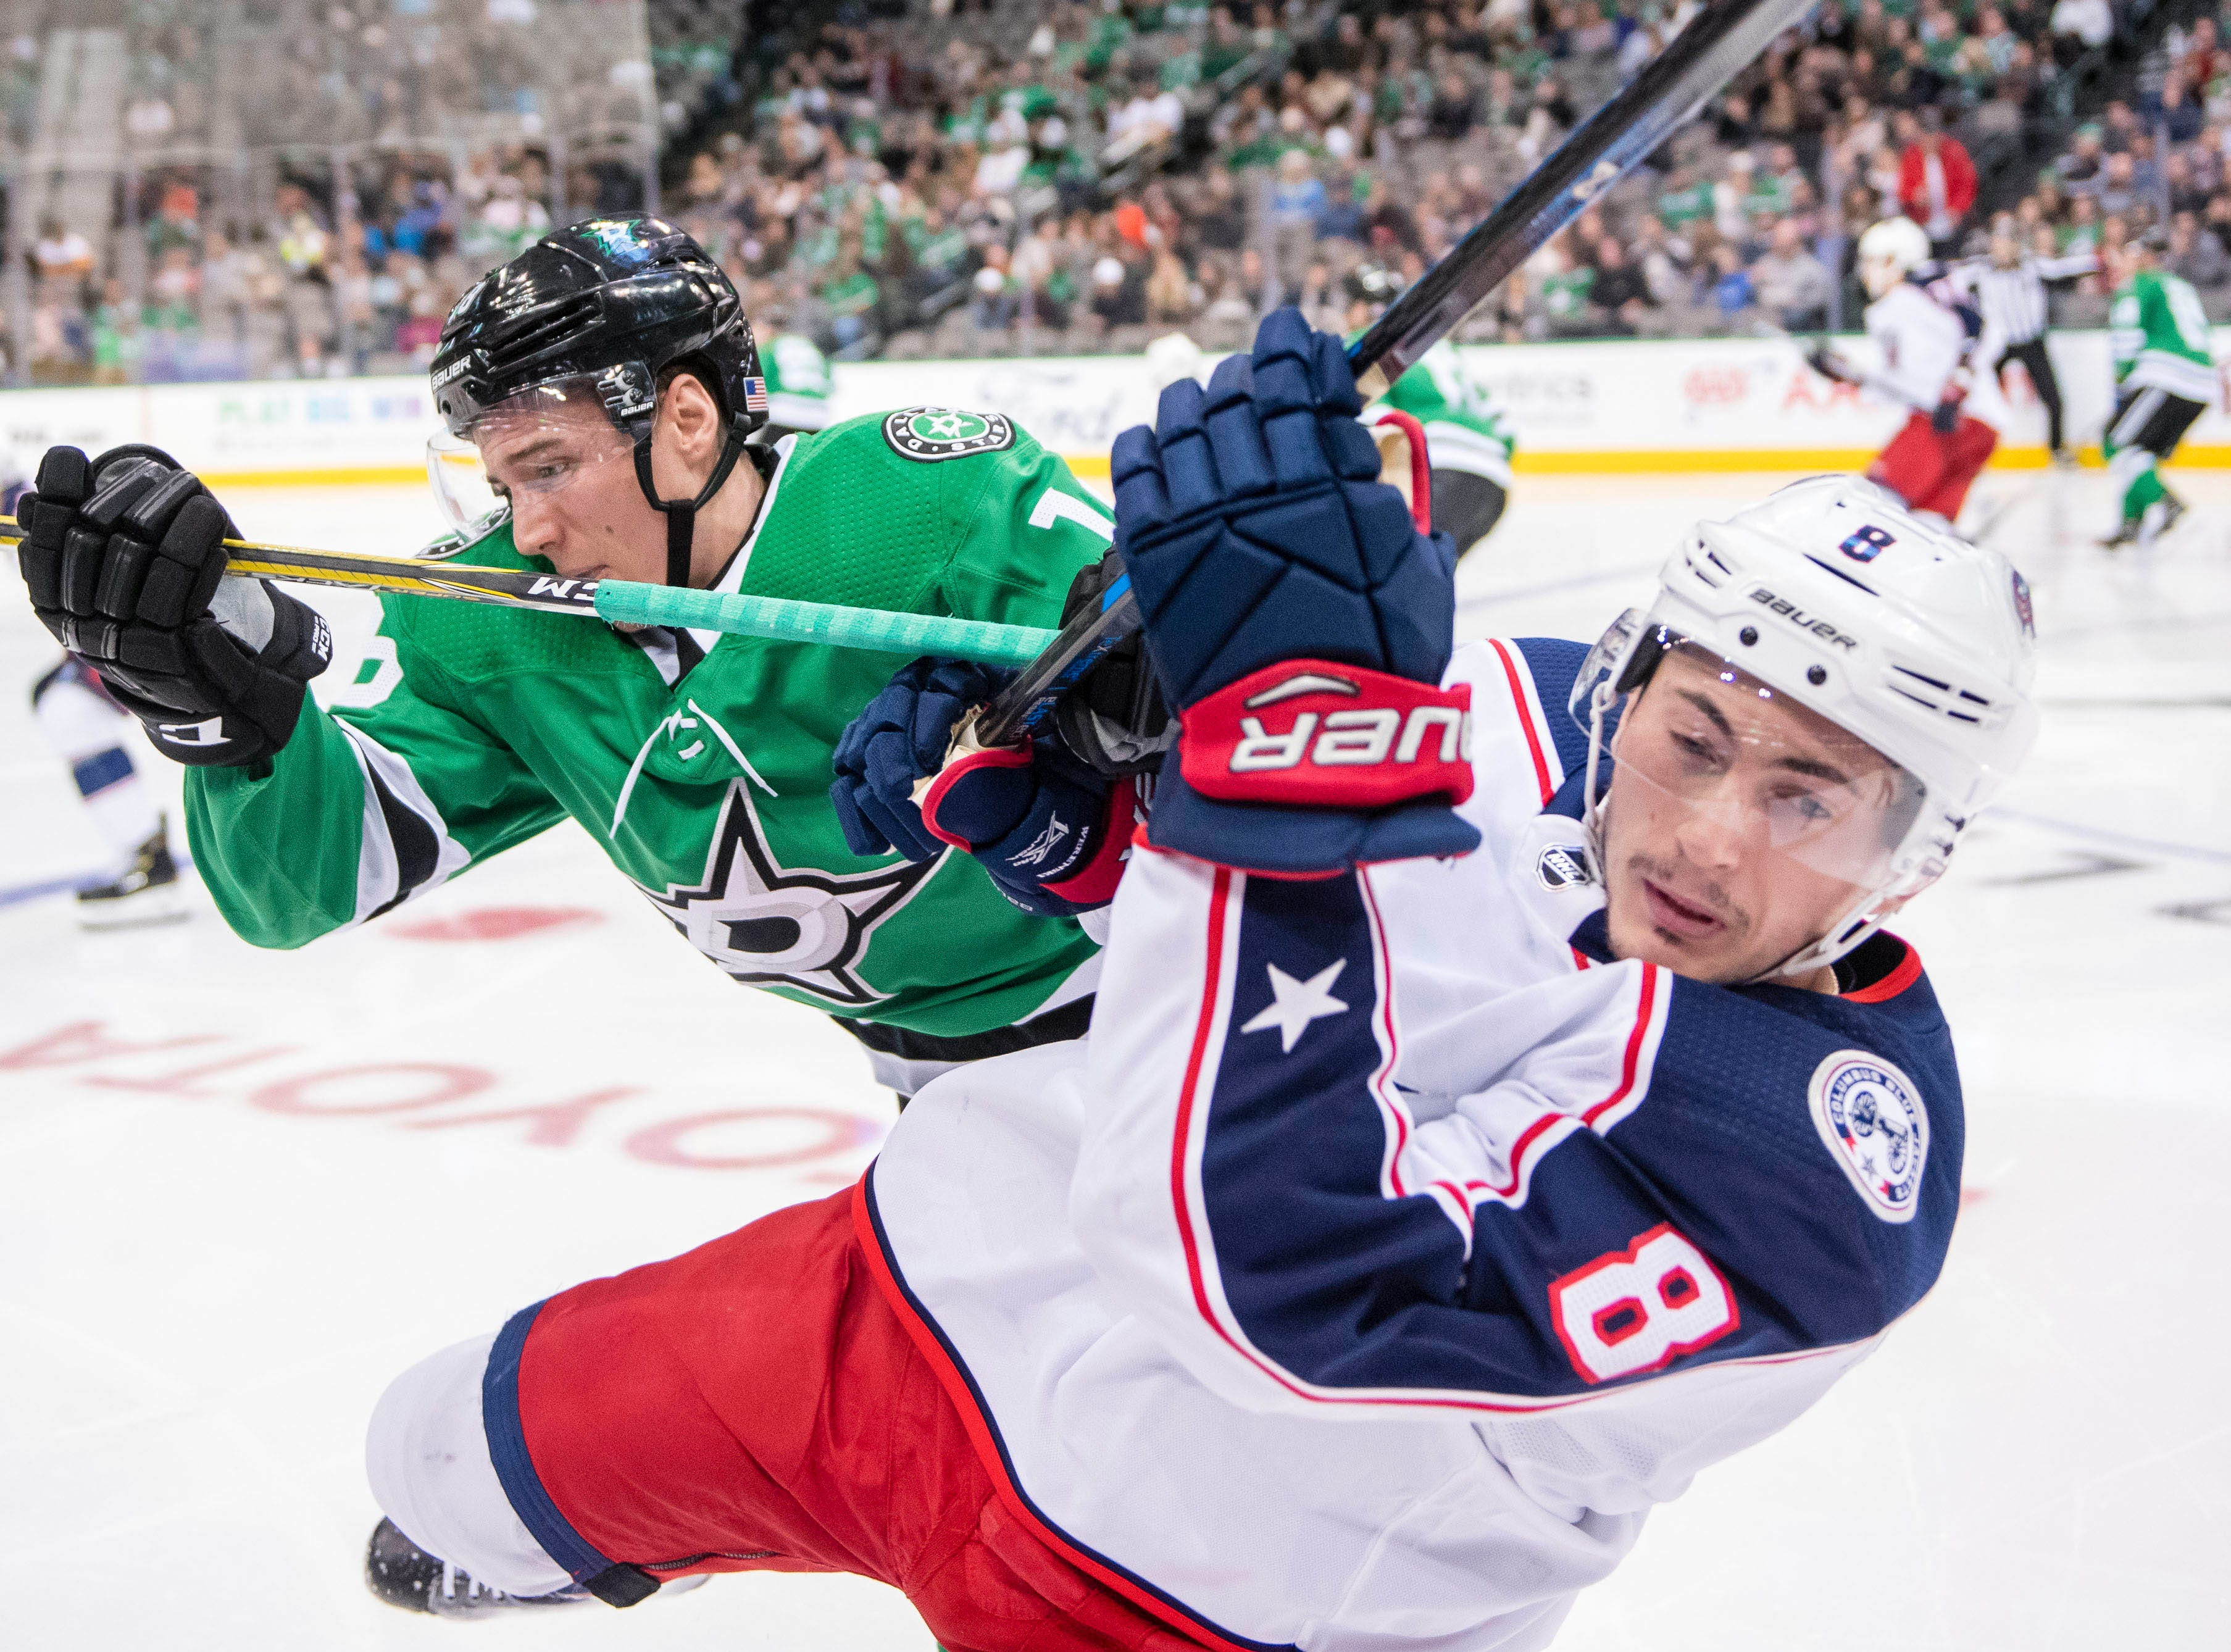 Nov. 12: Dallas Stars center Tyler Pitlick (18) checks Columbus Blue Jackets defenseman Zach Werenski (8) during the third period at the American Airlines Center.